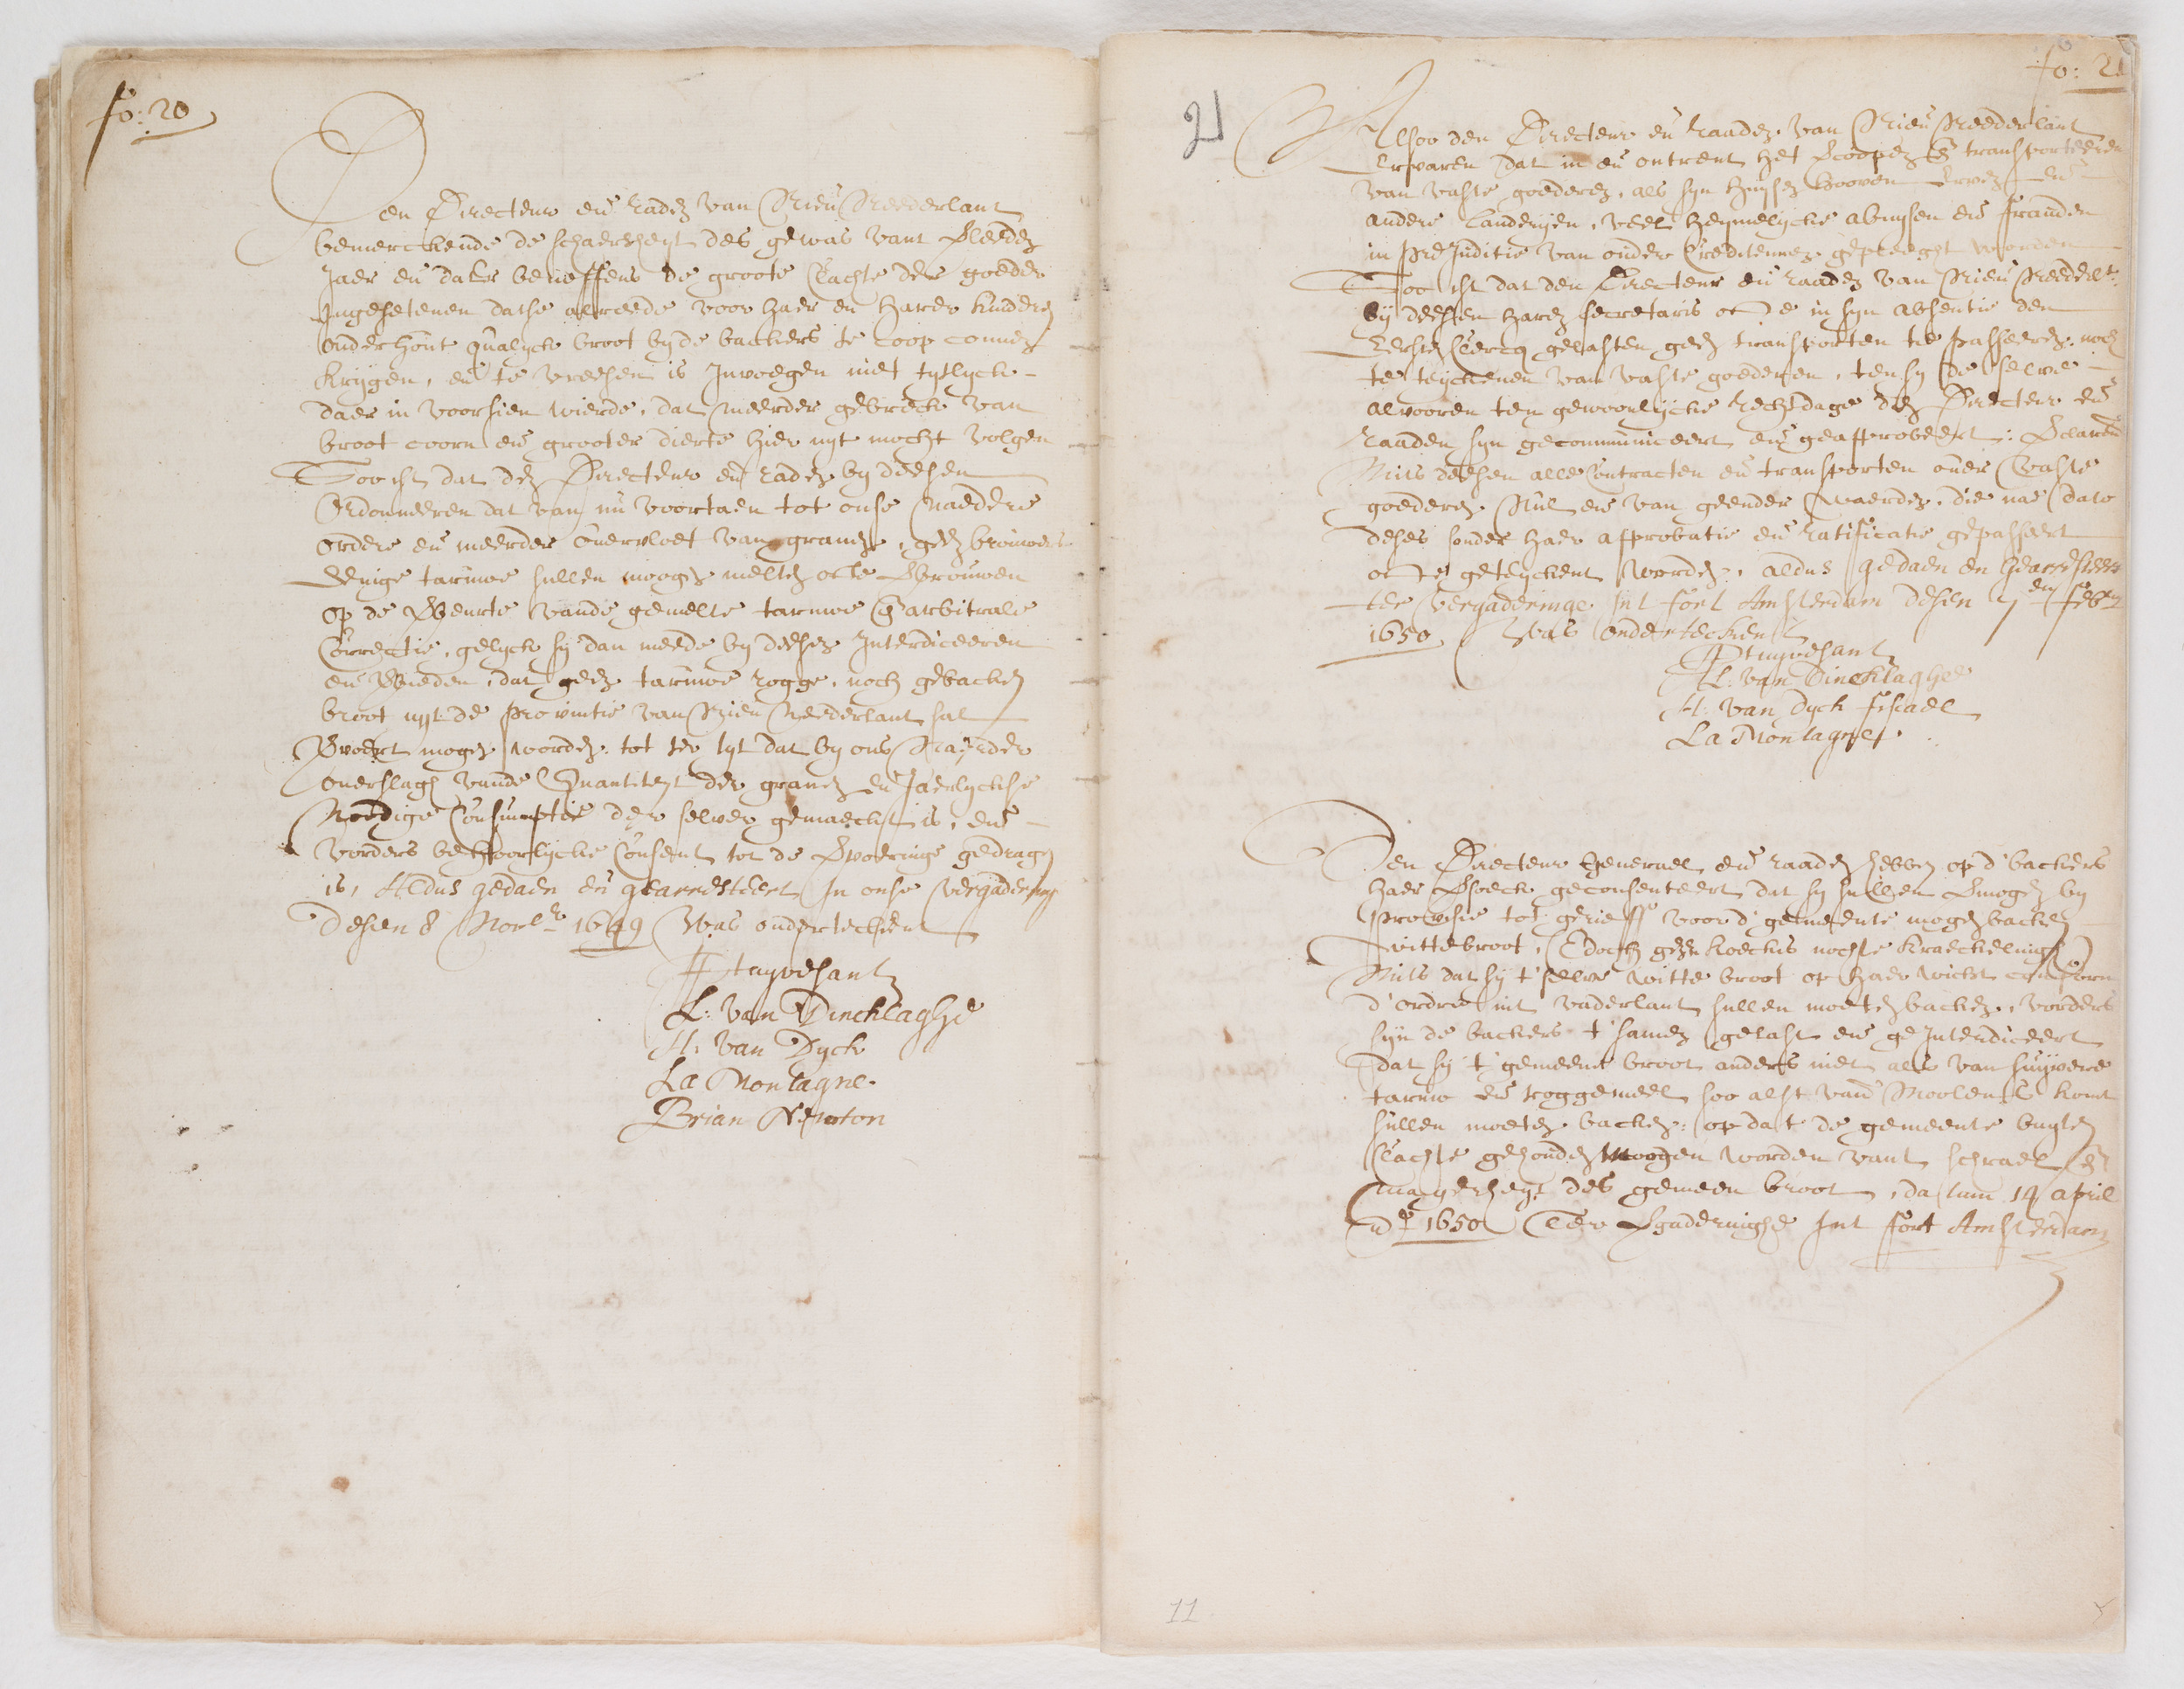 Ordinances of New Amsterdam, page 20-21